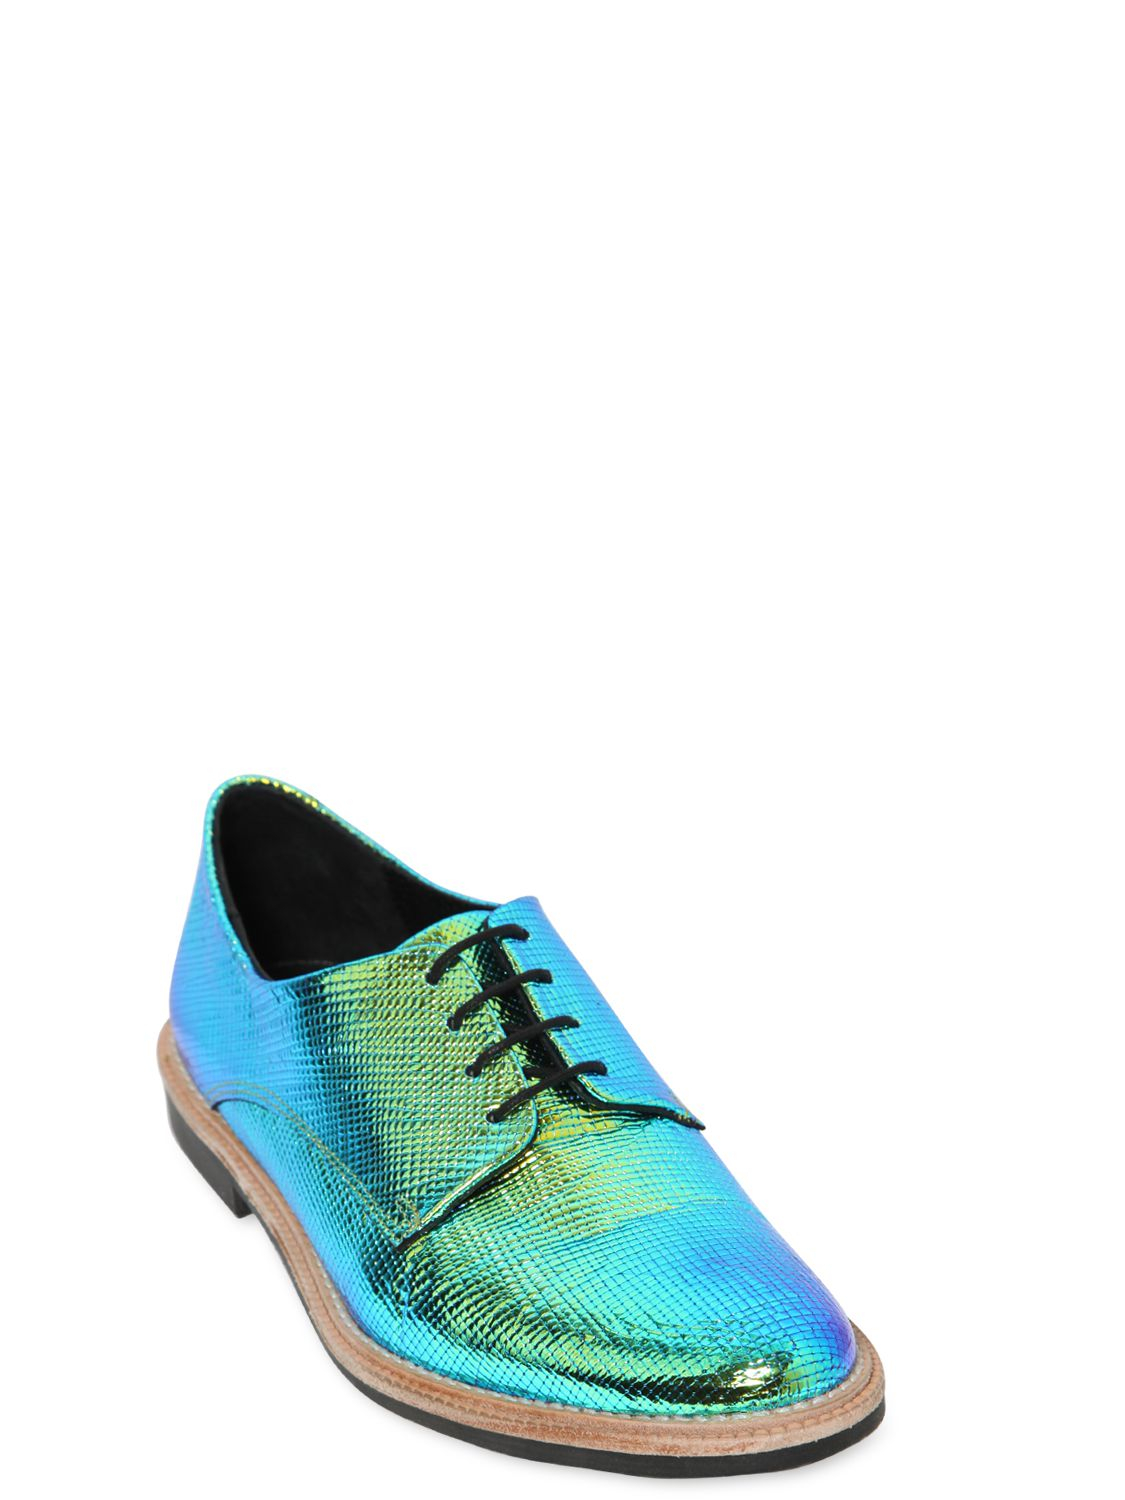 Lyst Miista 20mm Leather Iridescent Textile Shoes